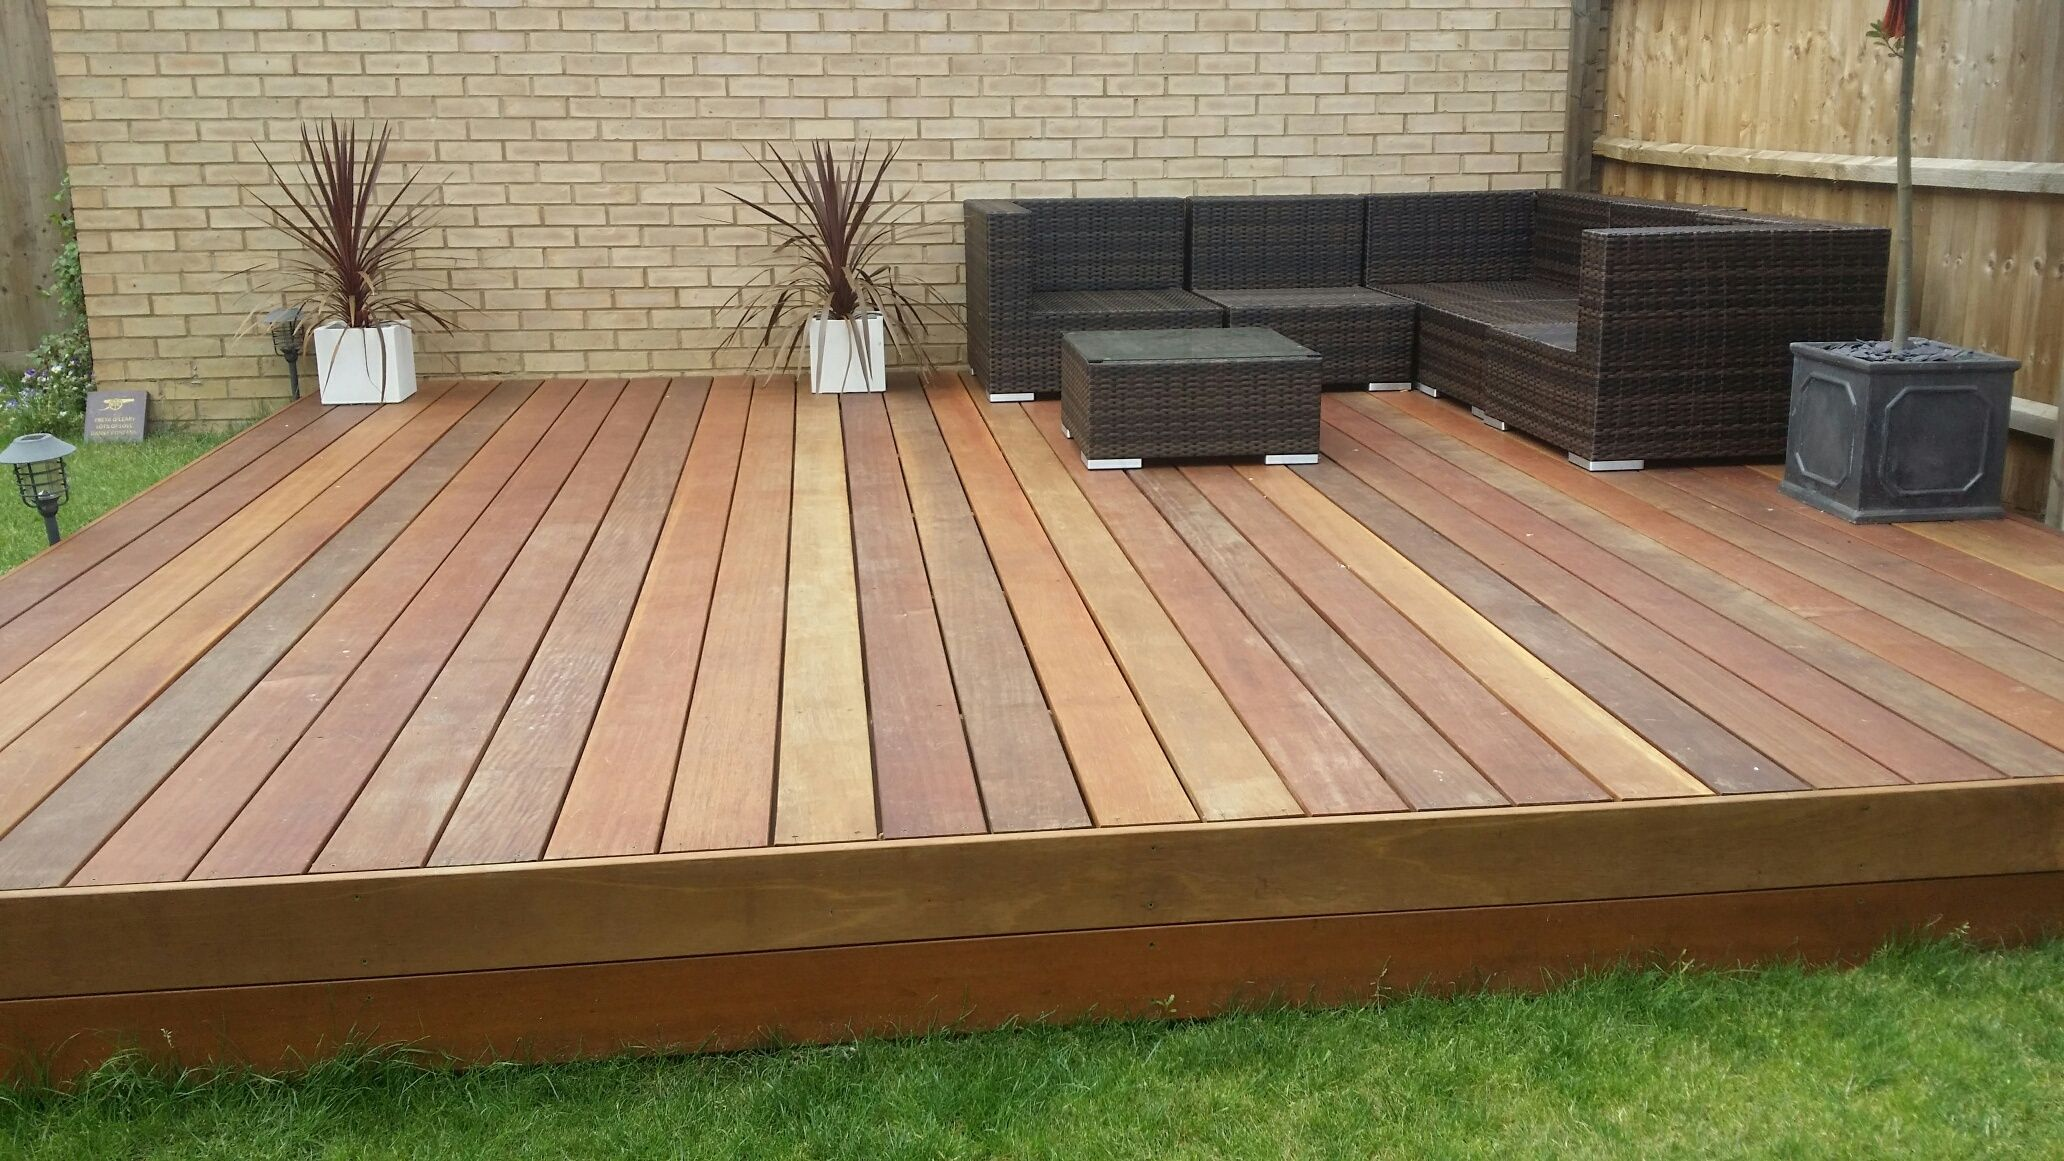 Raised decking ideas uk google search patio for Garden decking designs pictures